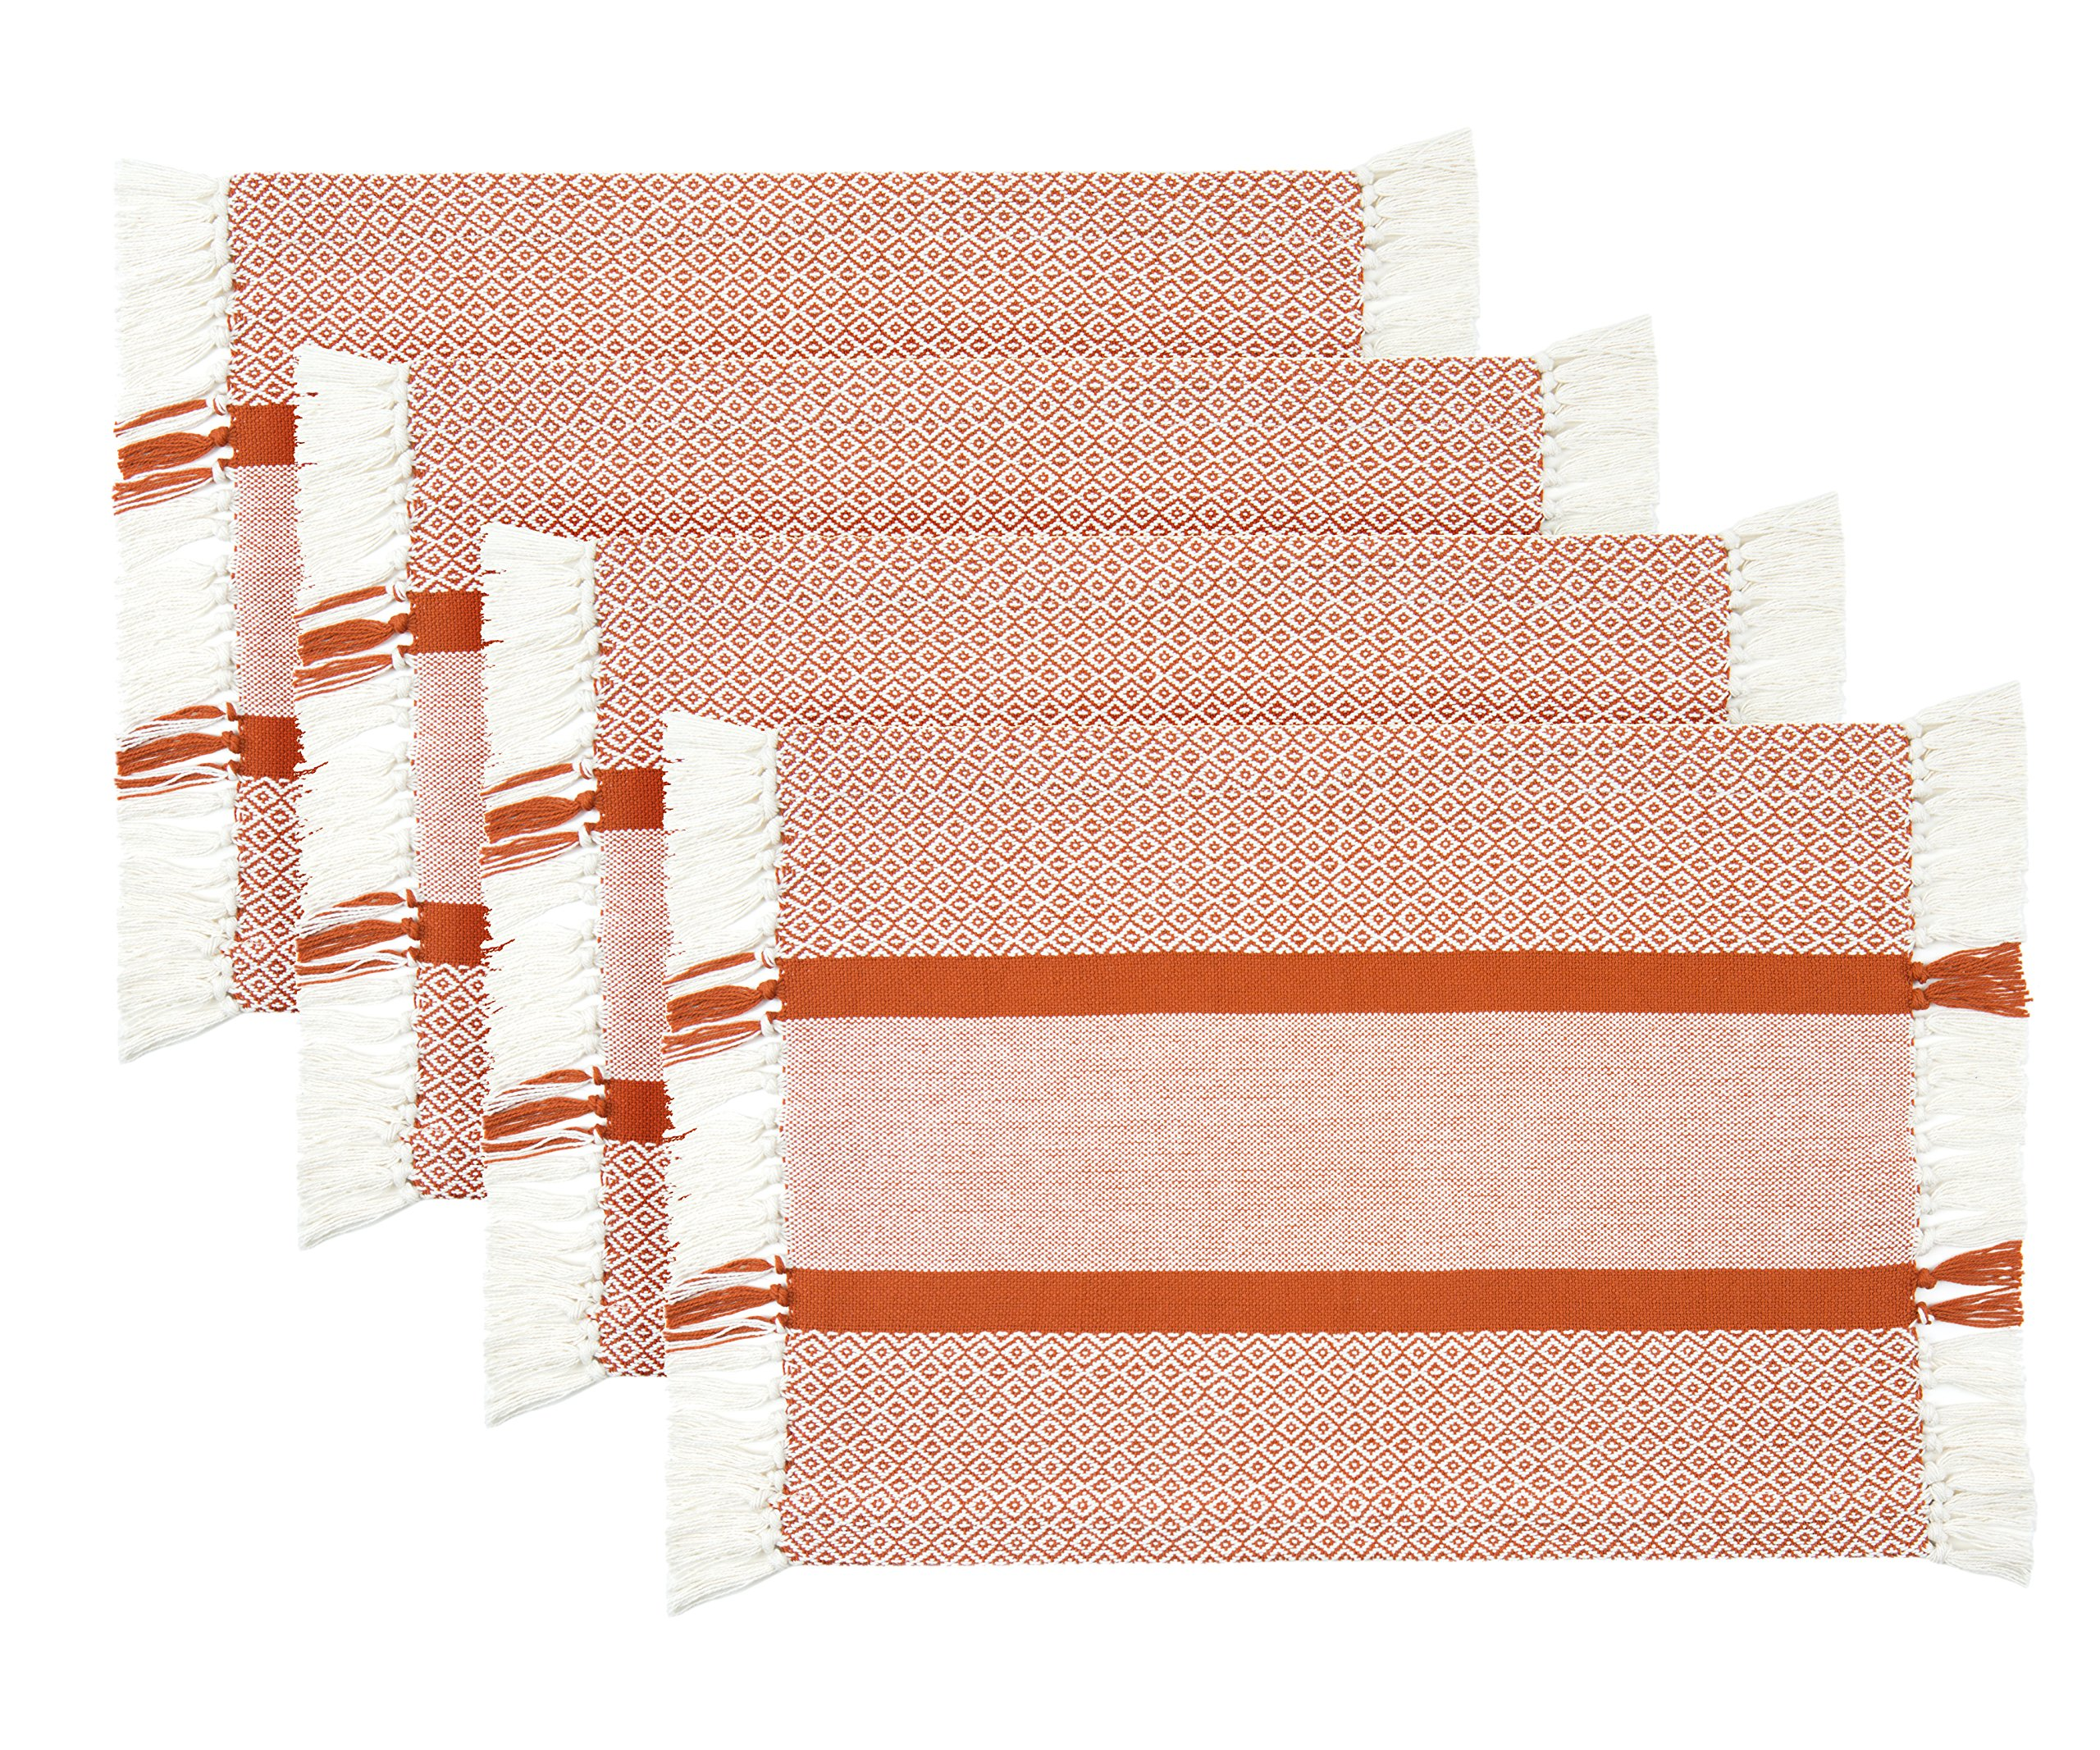 Sticky Toffee Cotton Woven Placemat Set with Fringe for Fall Harvest Halloween, Traditional Diamond, 4 Pack, Orange, 14 in x 19 in